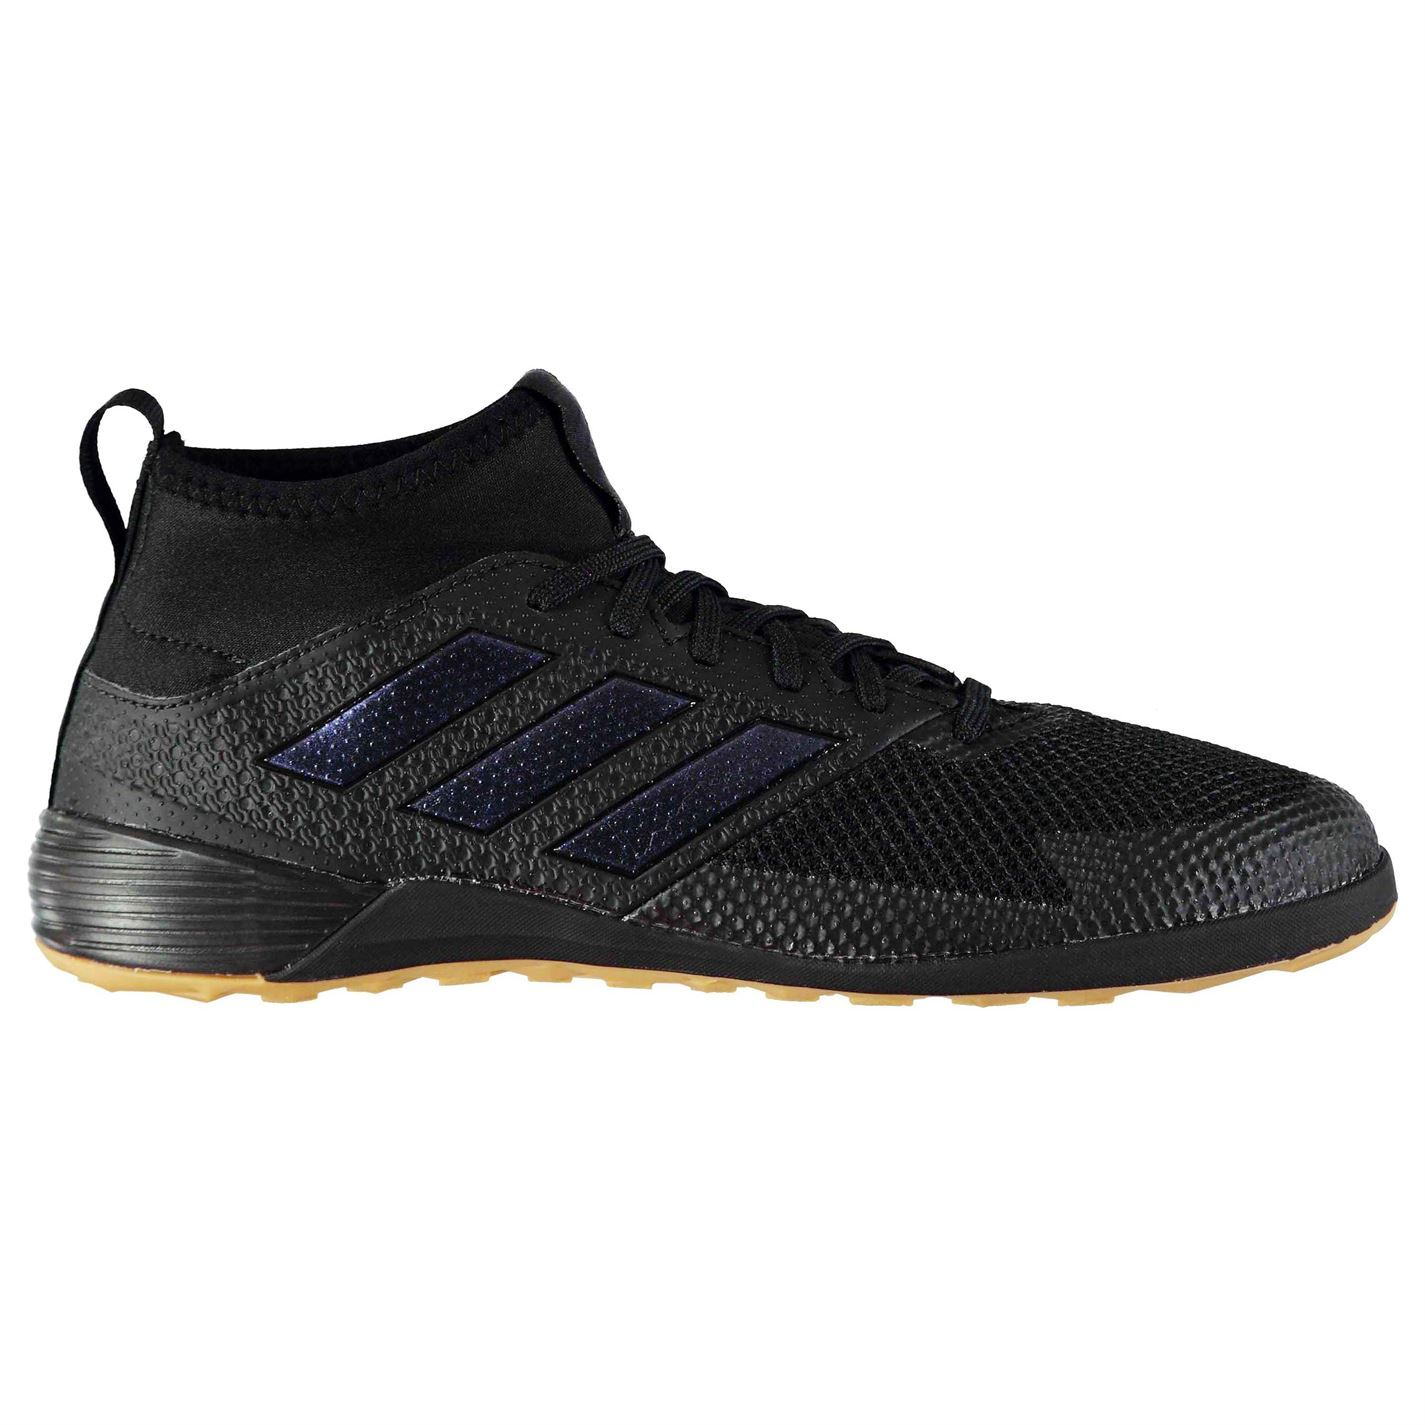 081a7e514 ... adidas Ace 17.3 Primemesh Indoor Football Trainers Mens Black Soccer  Shoes ...